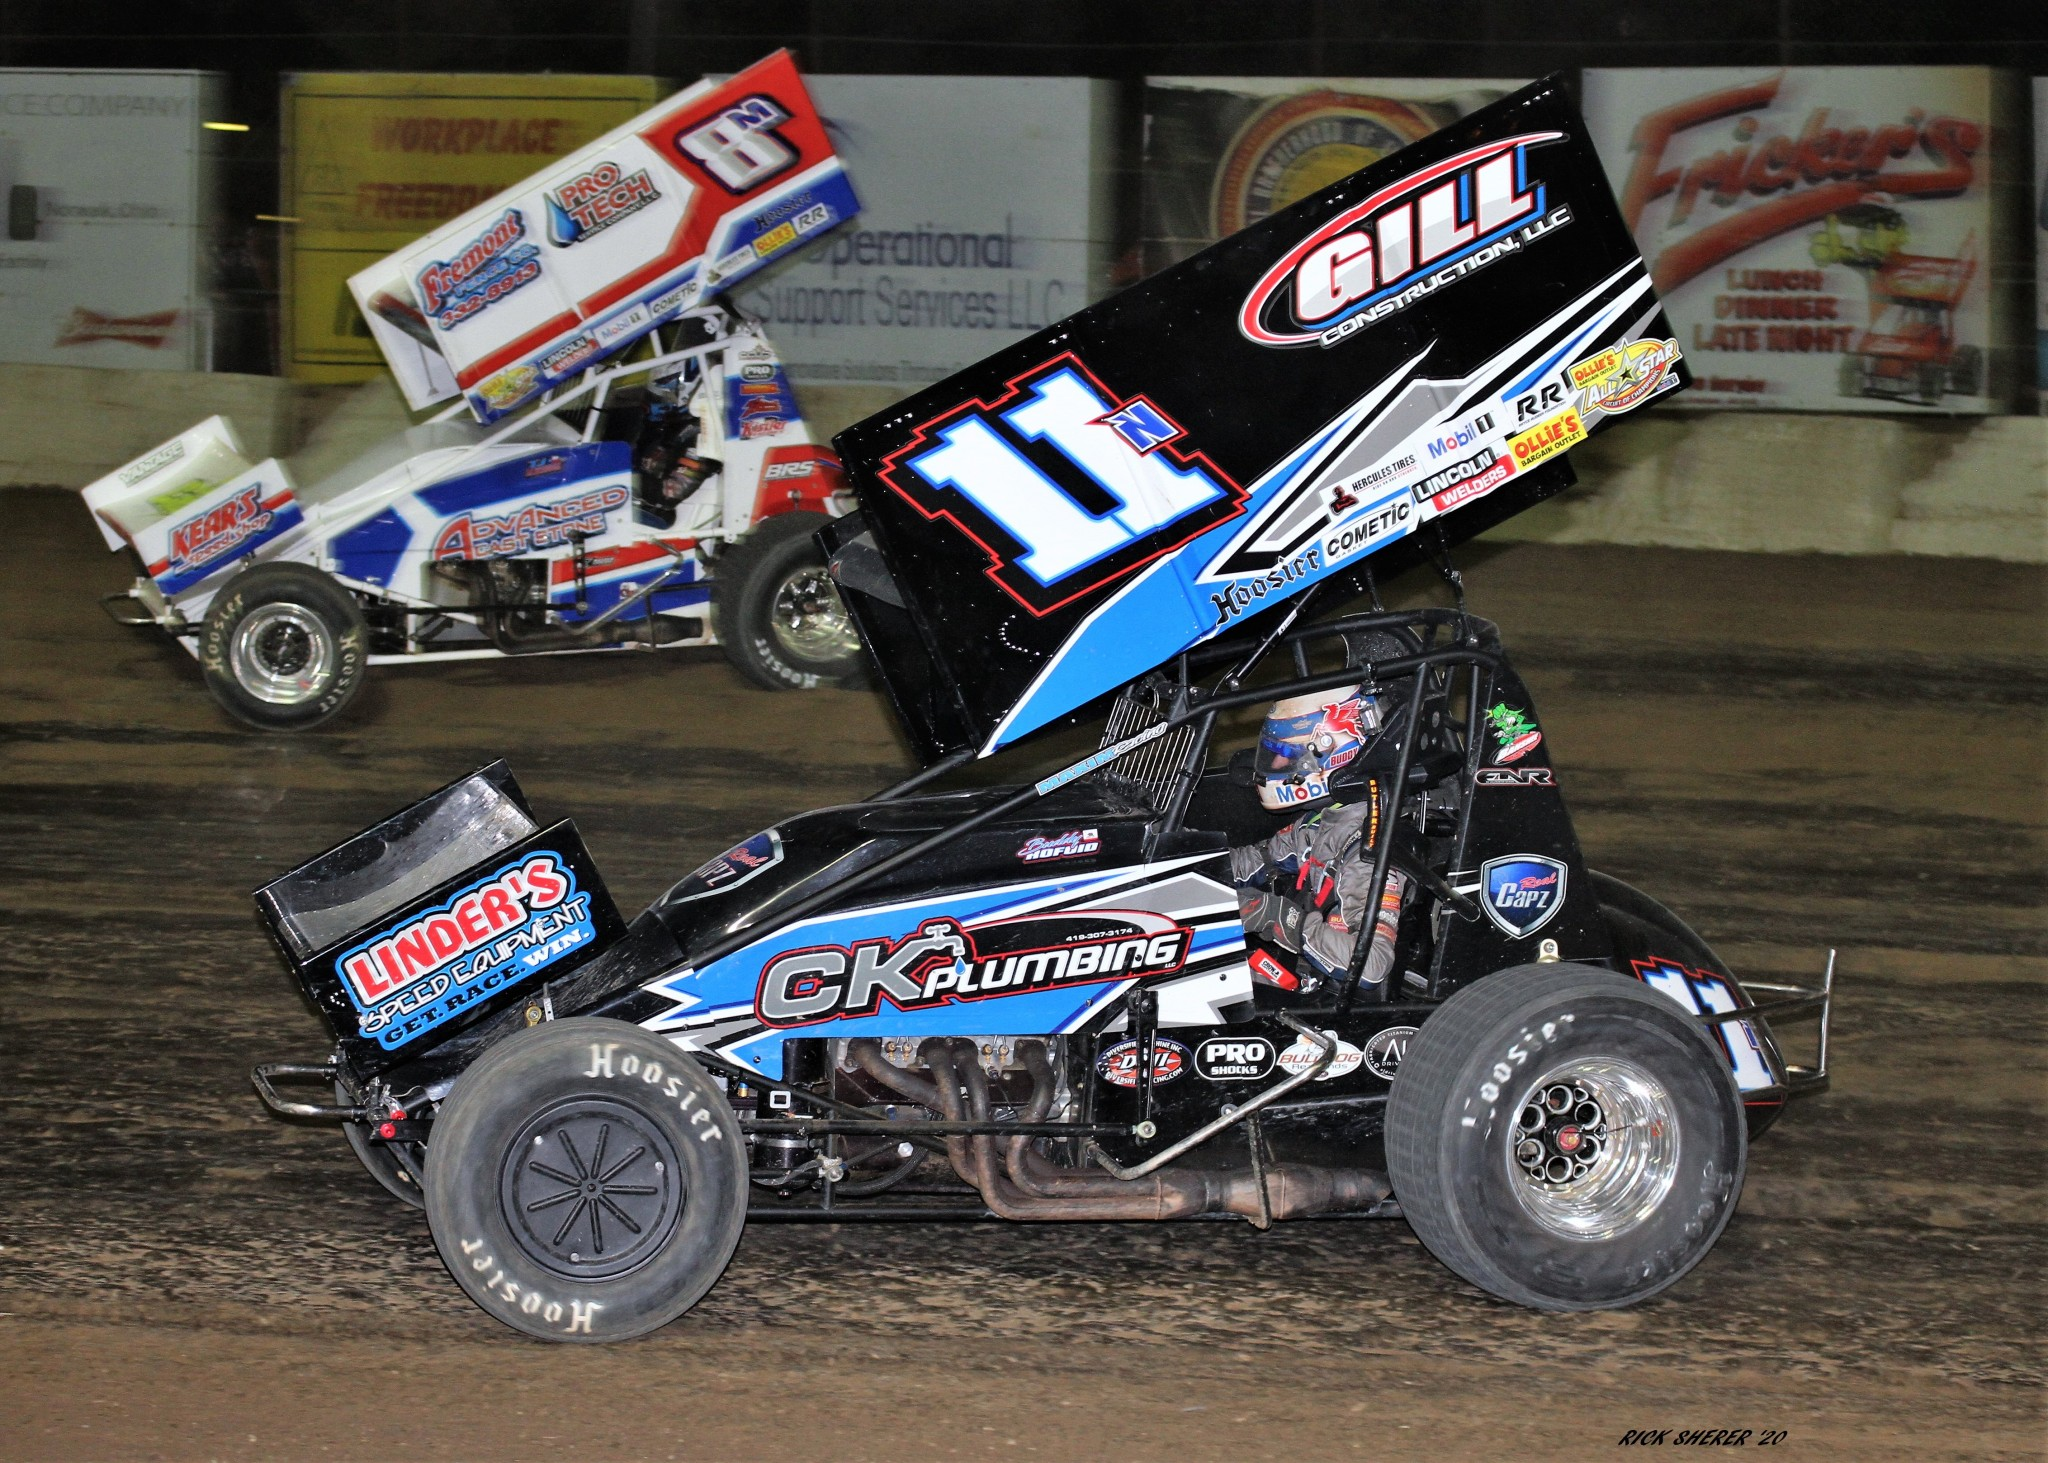 California transplant Buddy Kofoid (11n) puts T.J. Michael (8m) a lap down and runs away into the sunset to win night two of Ohio Sprint Speedweek at Fremont Speedway.